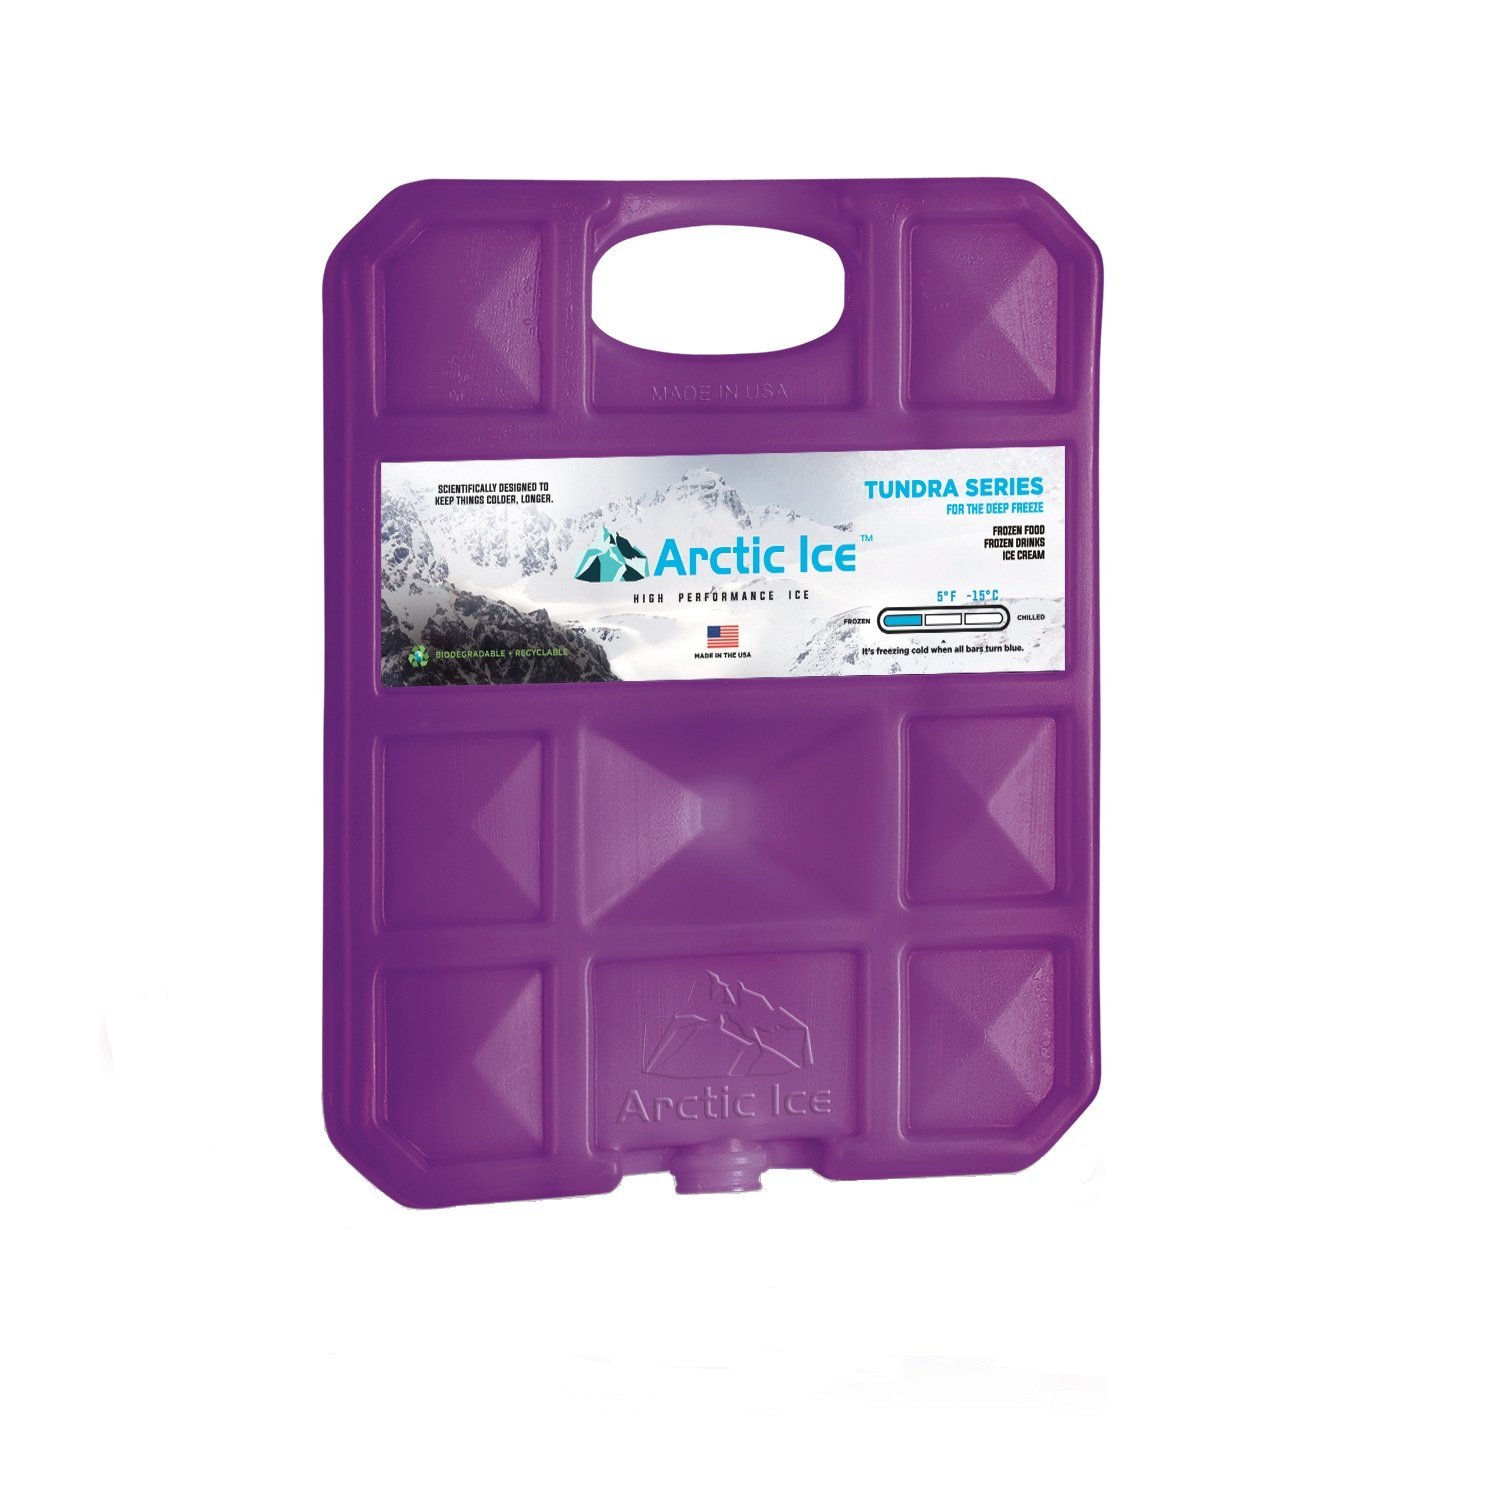 Long Lasting Ice Pack for Coolers, Camping, Fishing and More, Large Reusable Ice Pack, Tundra Series by Arctic Ice